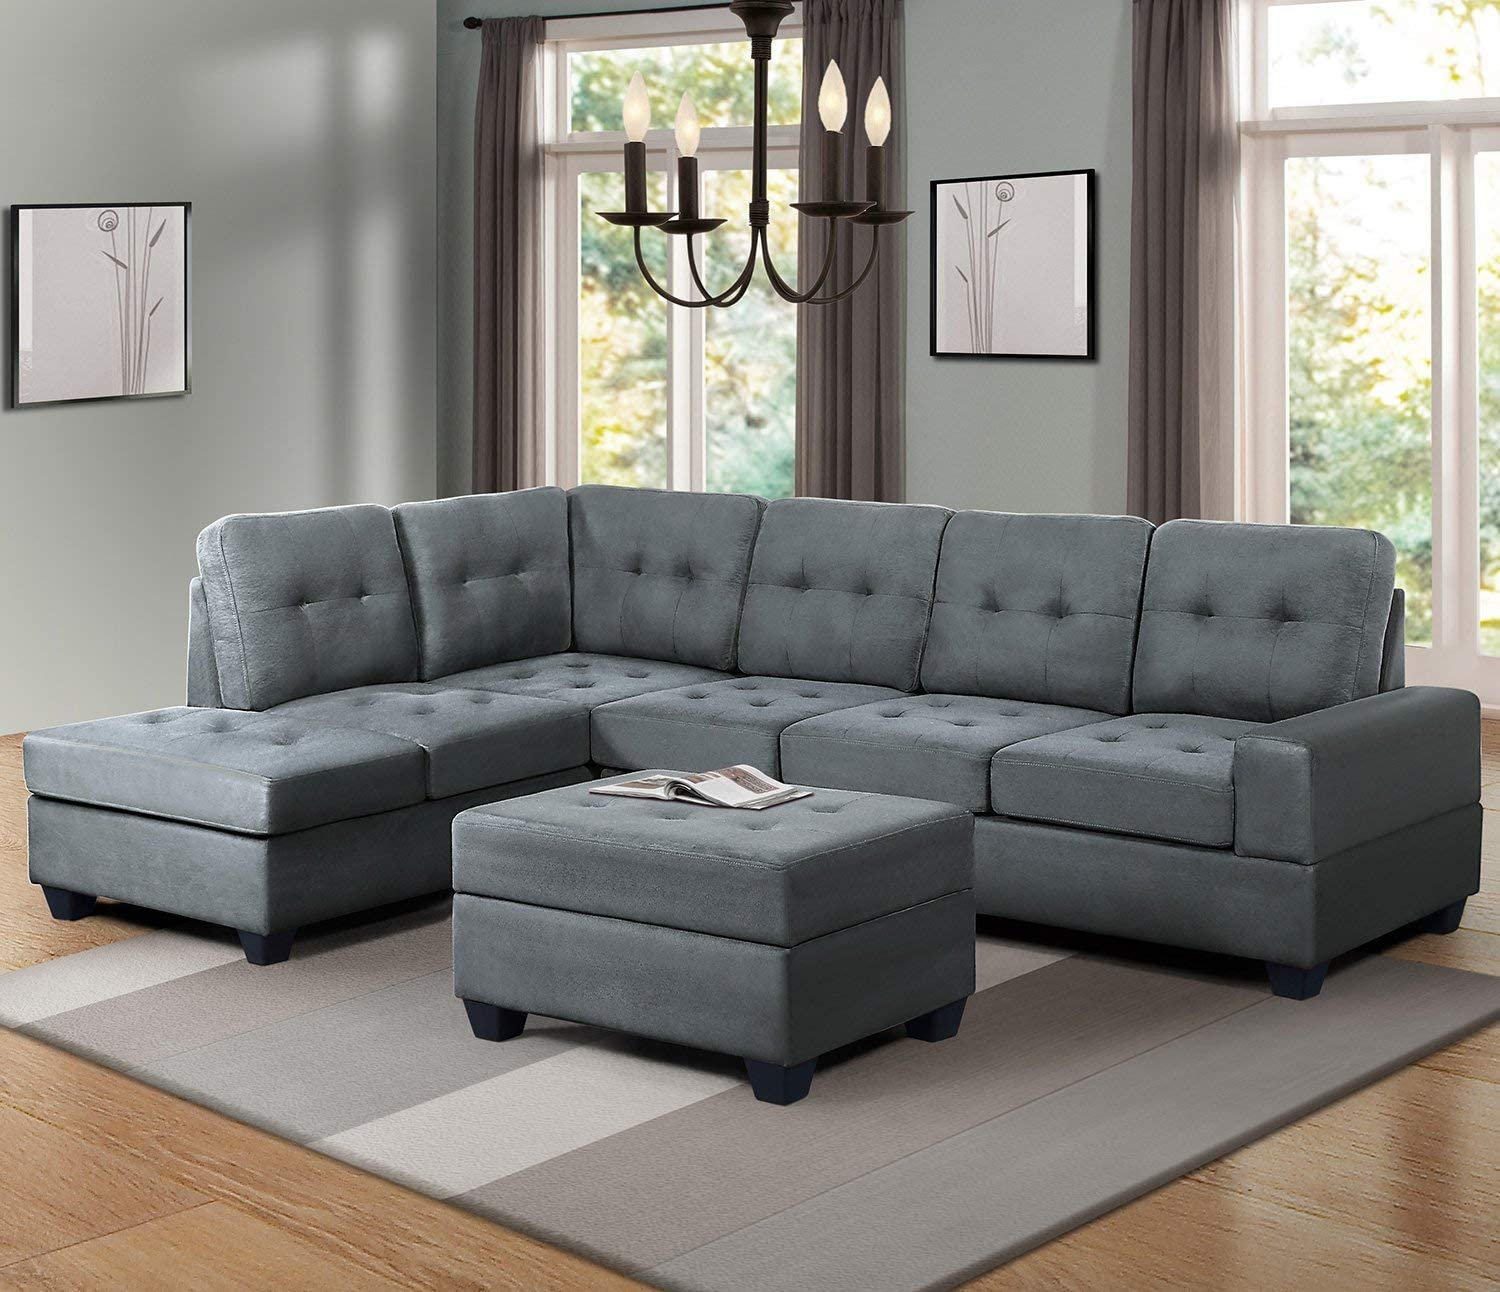 Harper & Bright Designs Sectional Sofa 3-Piece with Storage Ottoman Reversible Chaise Lounge and Cup Holder Living Room Sofa Couches